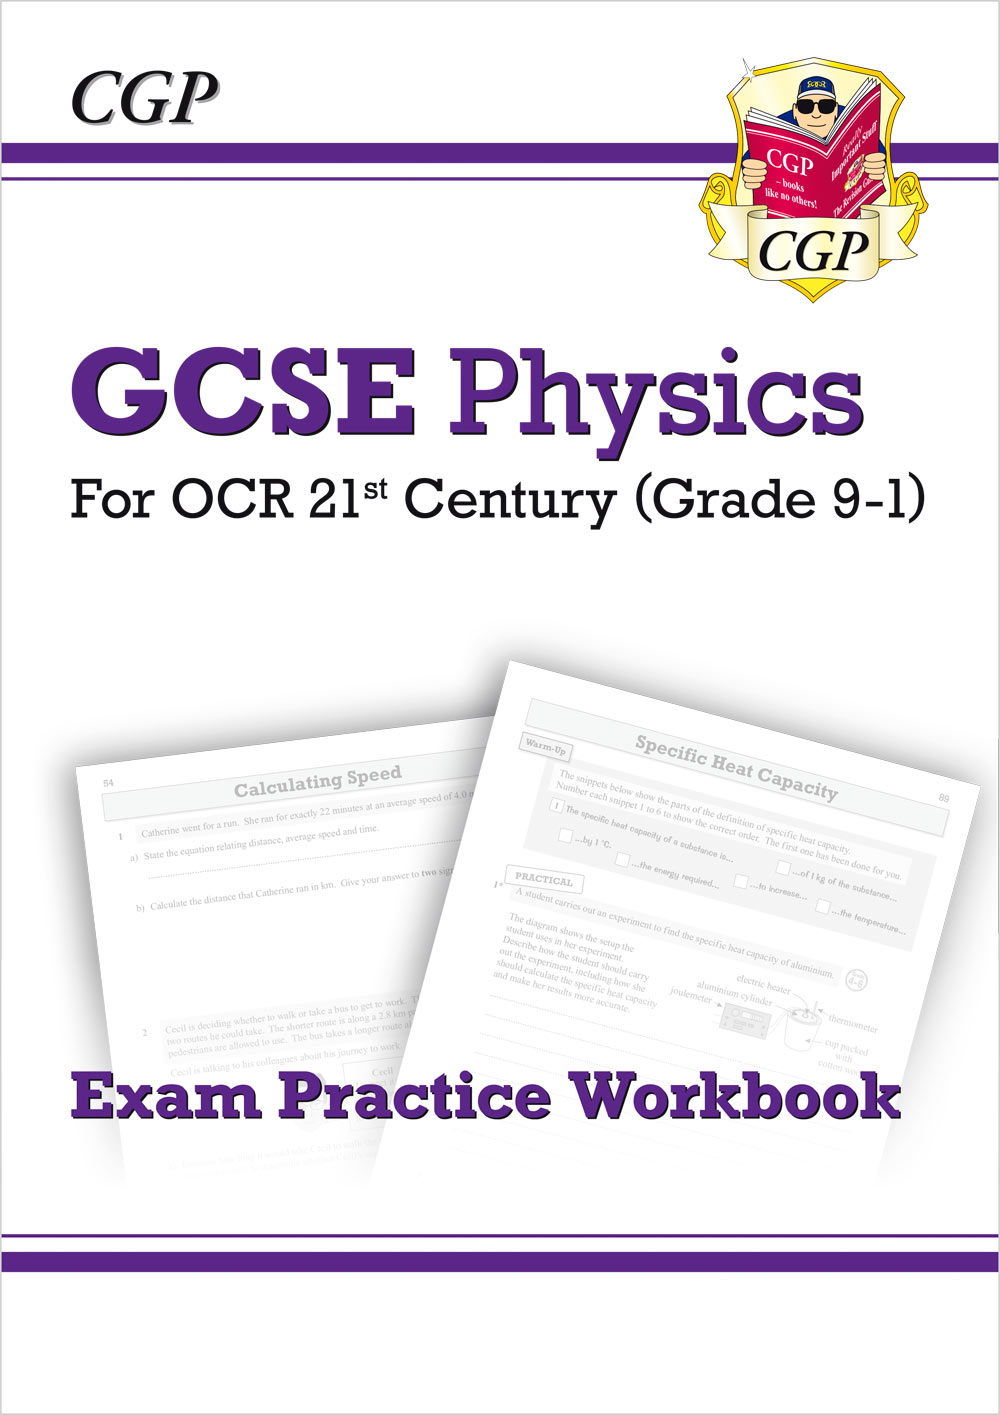 P2Q41 - New Grade 9-1 GCSE Physics: OCR 21st Century Exam Practice Workbook